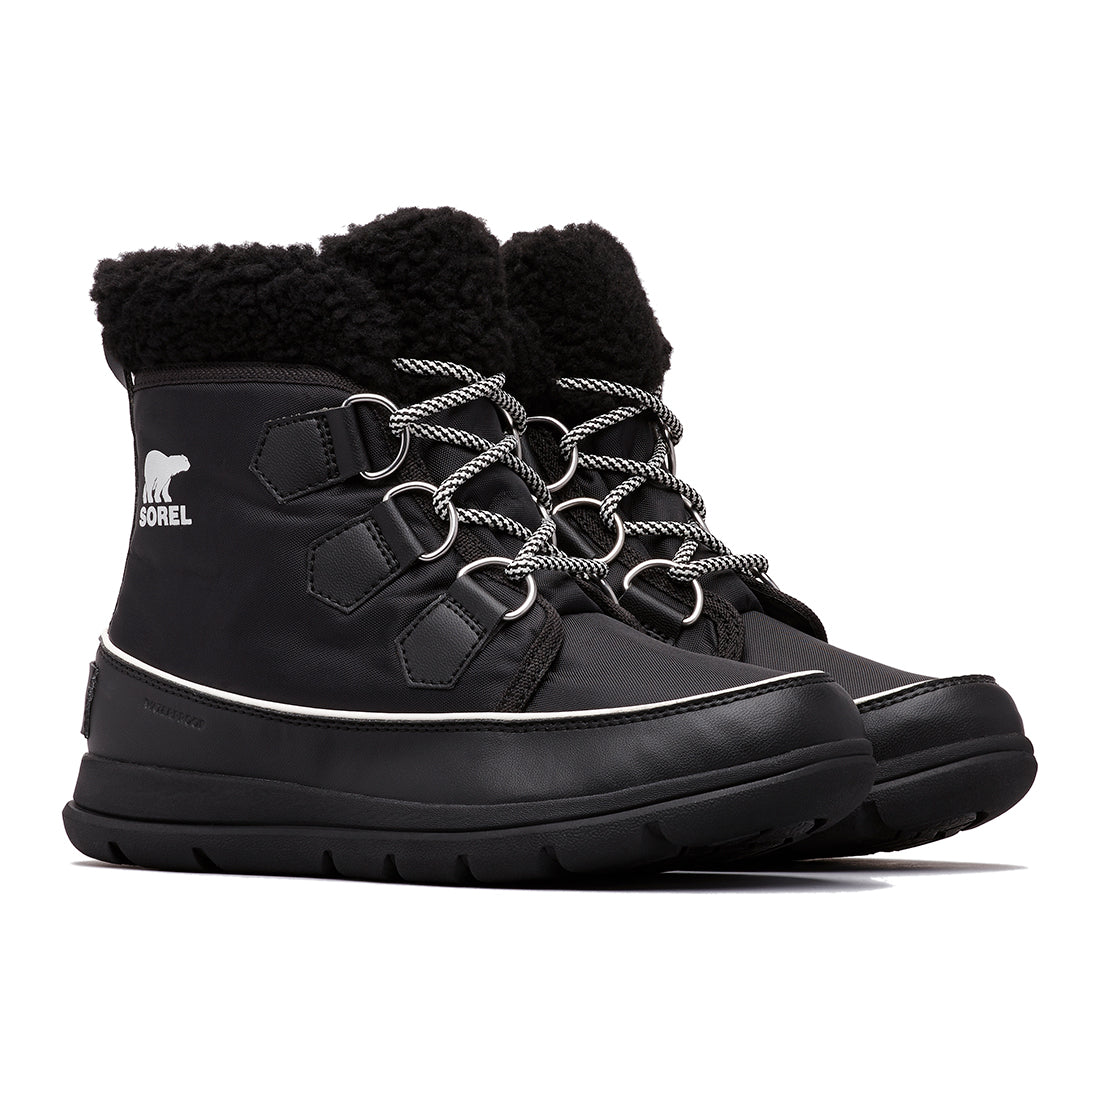 480a54480dc6 Women s Sorel Explorer Carnival Boot - BLACK-SEA SALT – Gazelle Sports